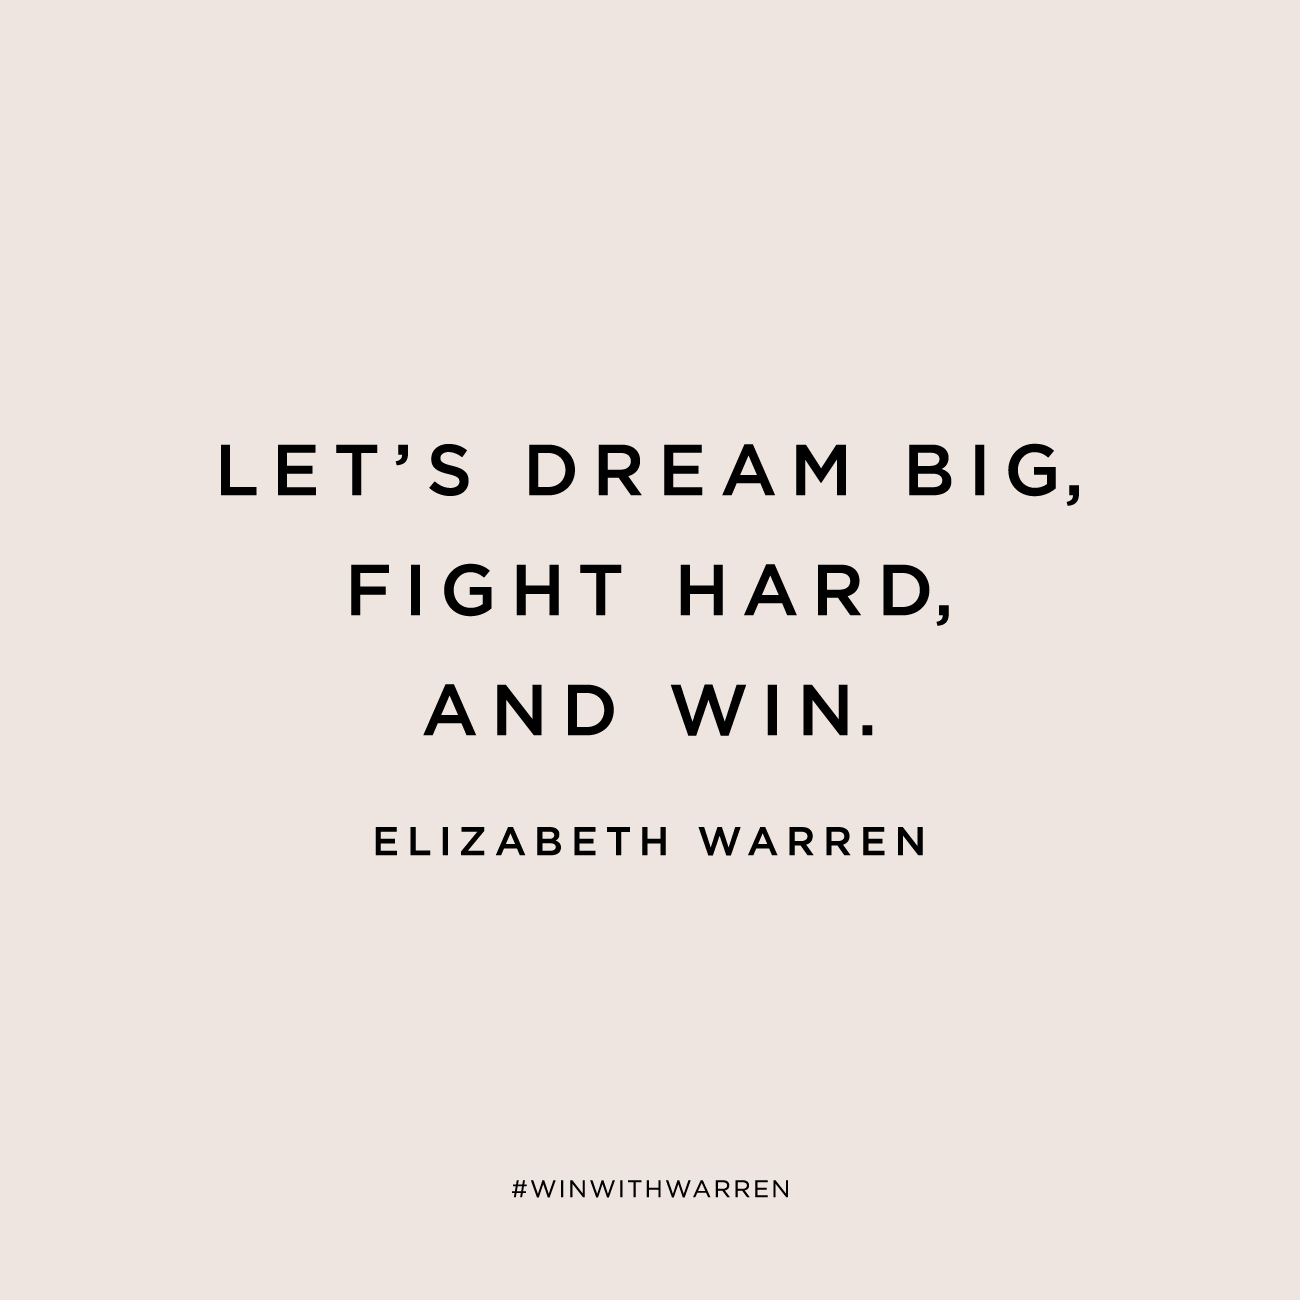 Dream Big, Fight Hard, and Win with Elizabeth Warren